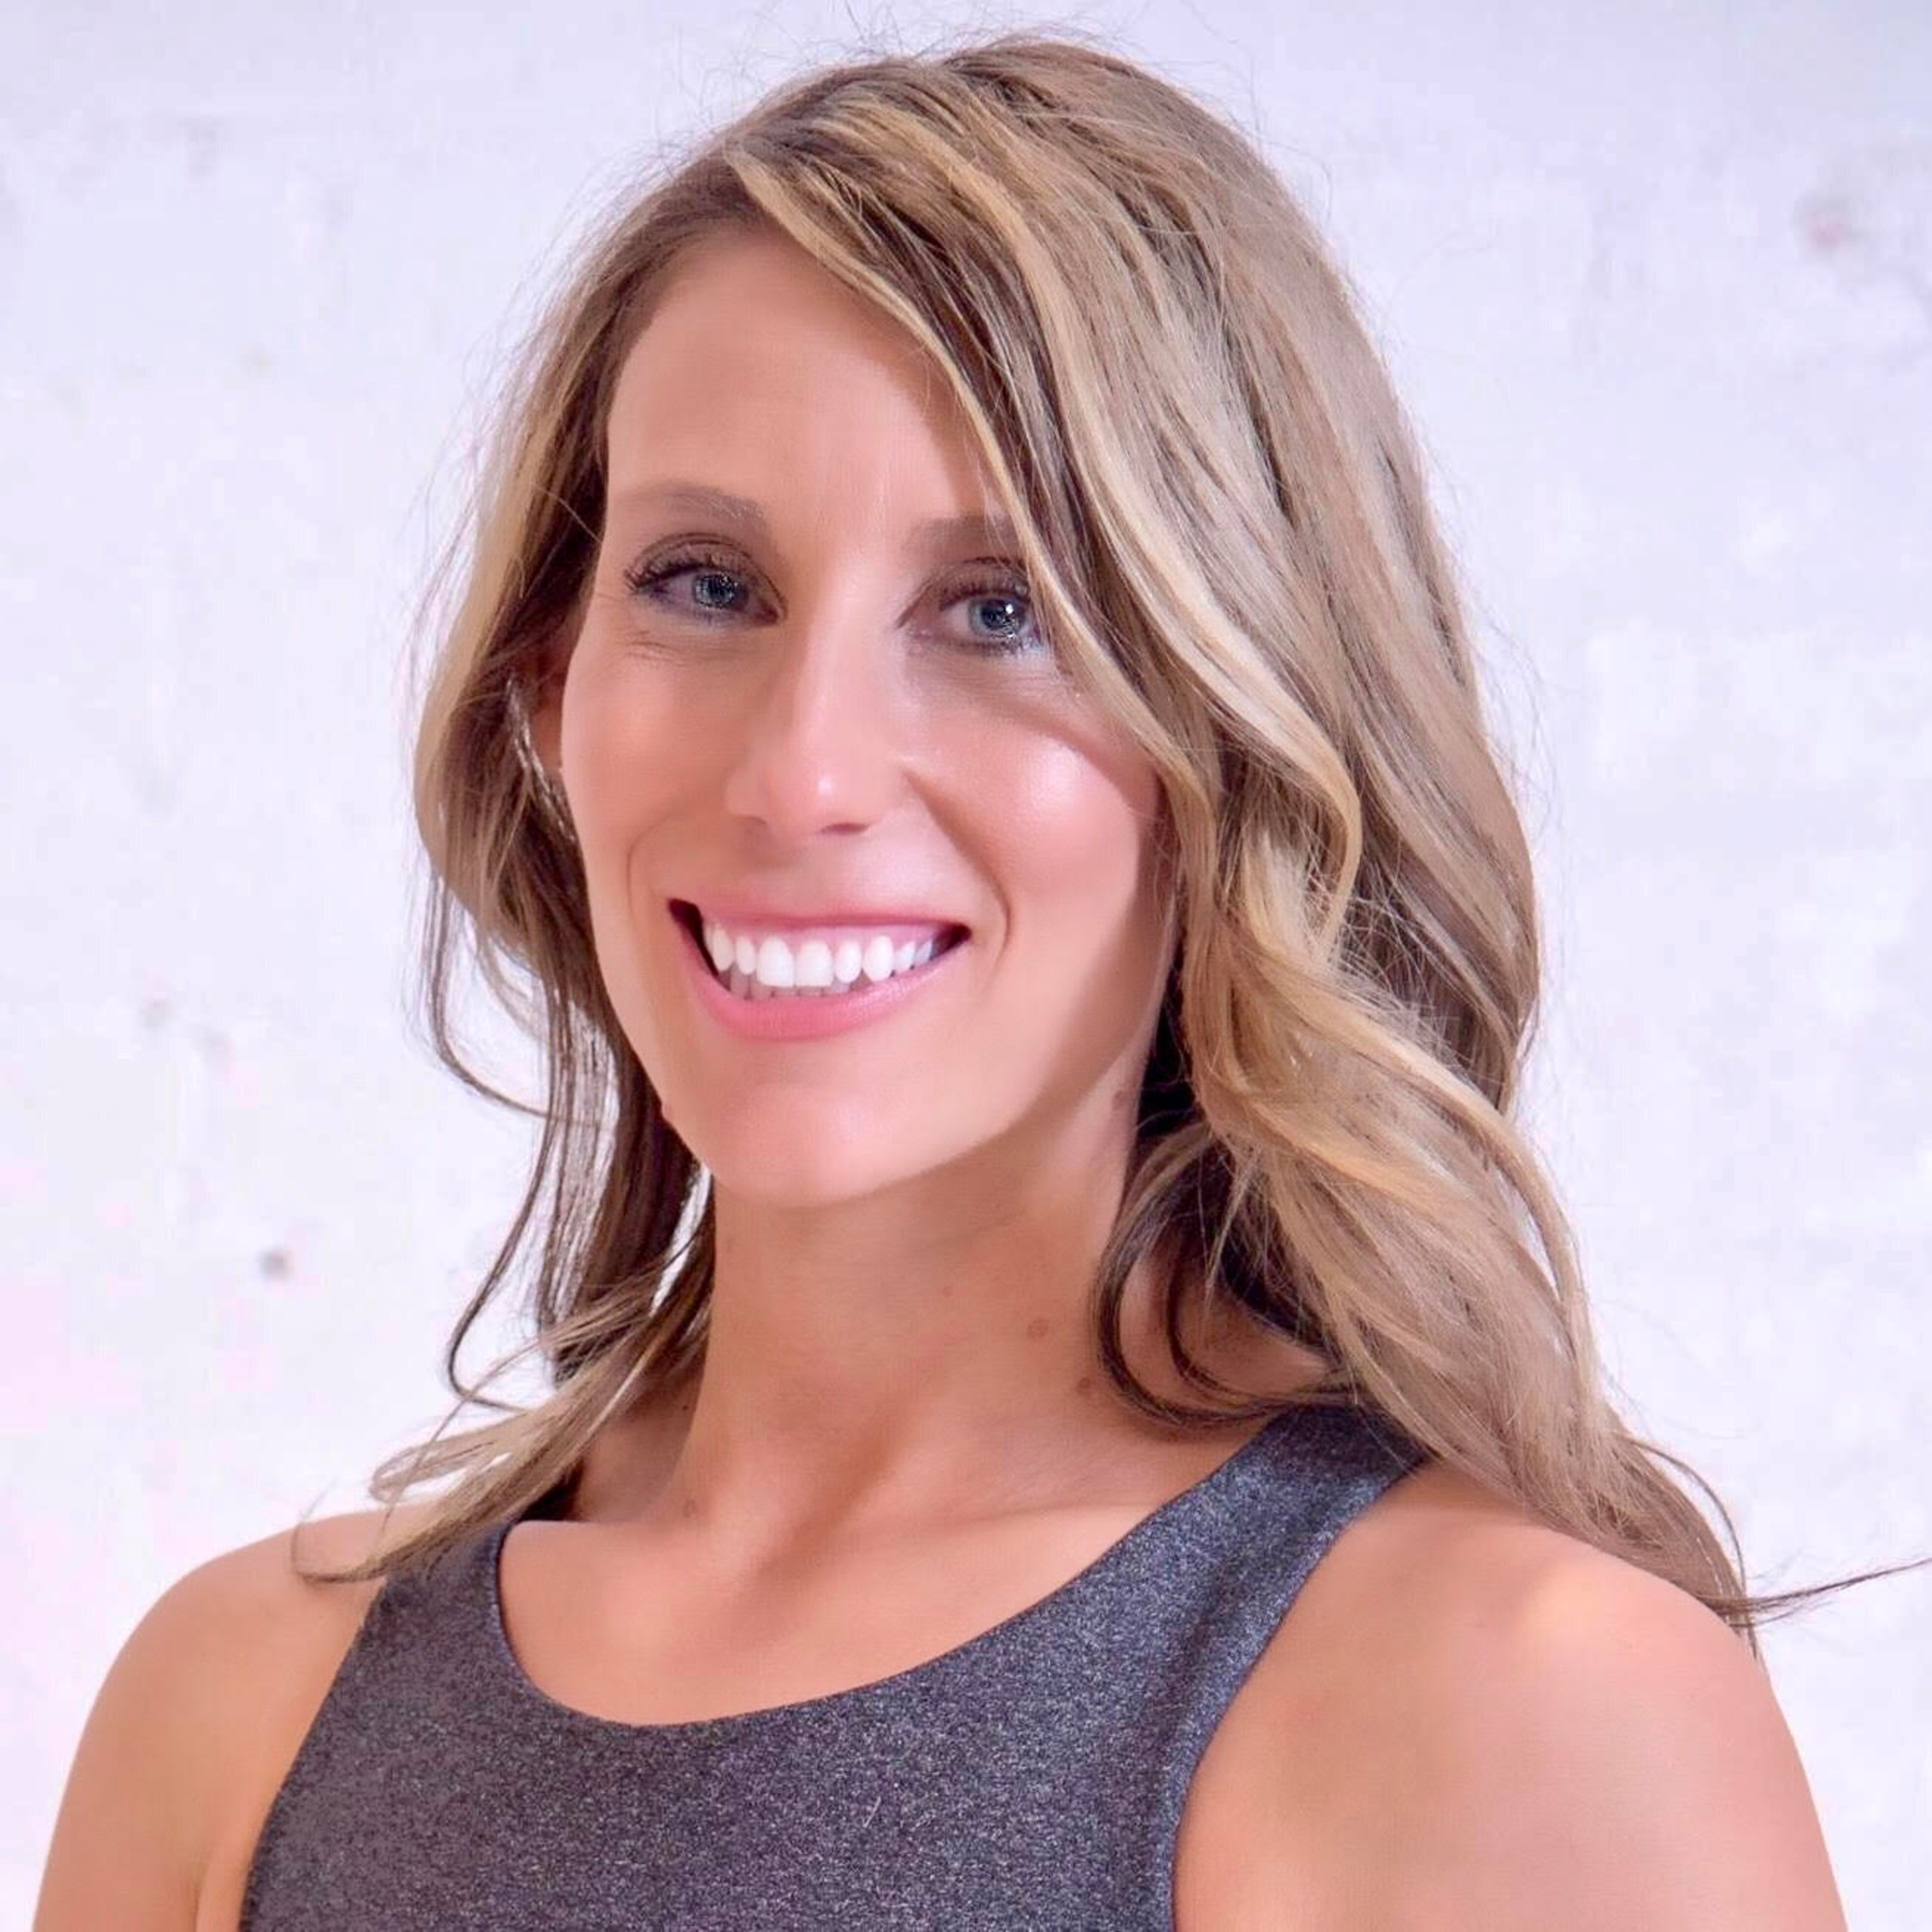 Behind The Curtain With Ms.2019 Ms.Health and Fitness Contestant - Ann Marie Svogun